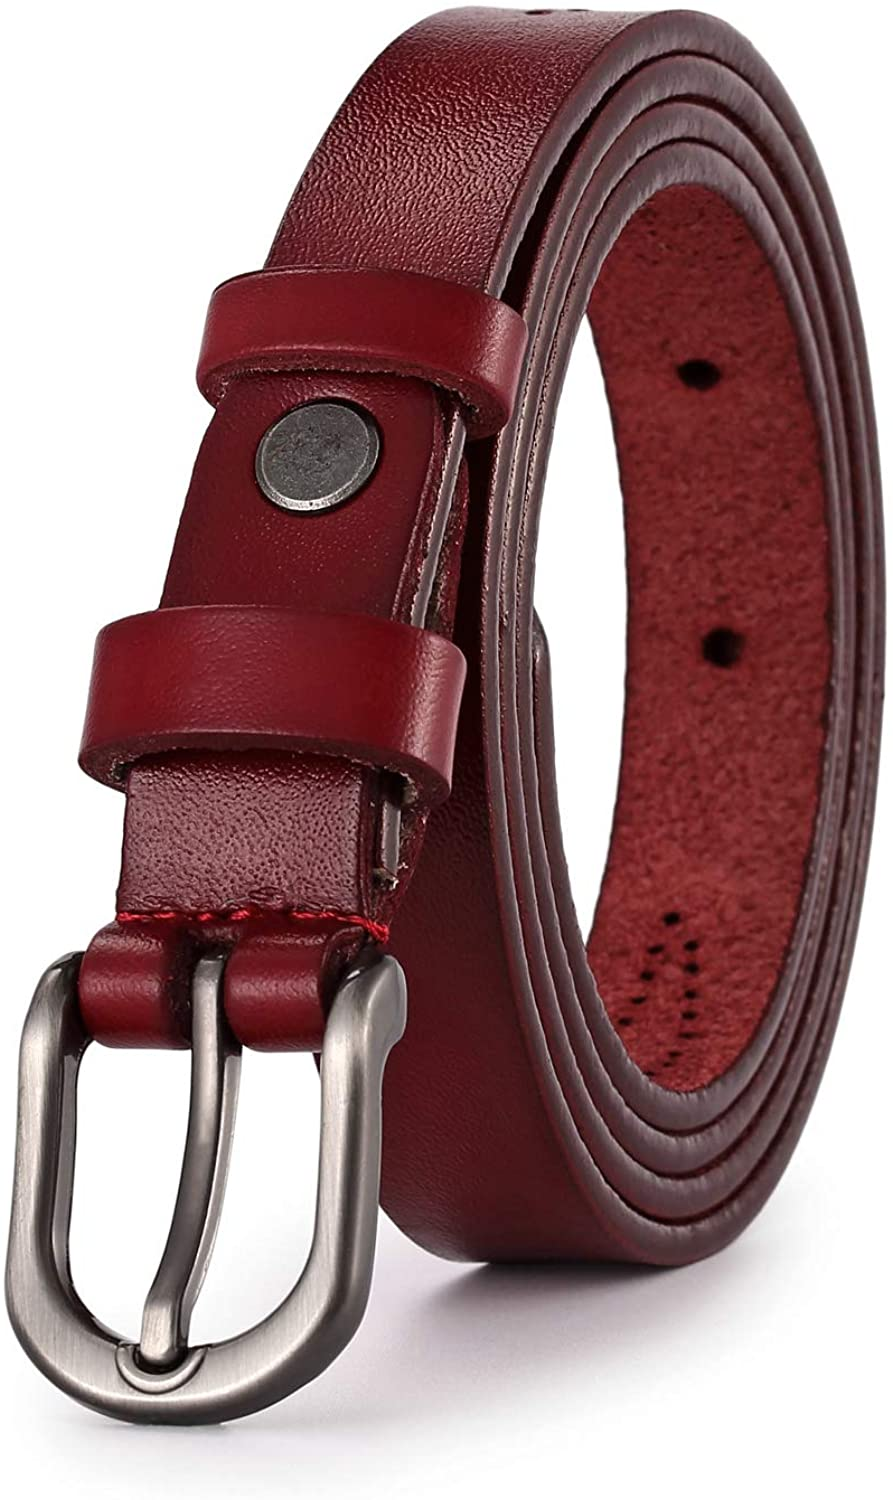 Women Leather Belt, Geniue Leather Cute Ladies Belt for Jeans Dress Pants with Fashion Buckle